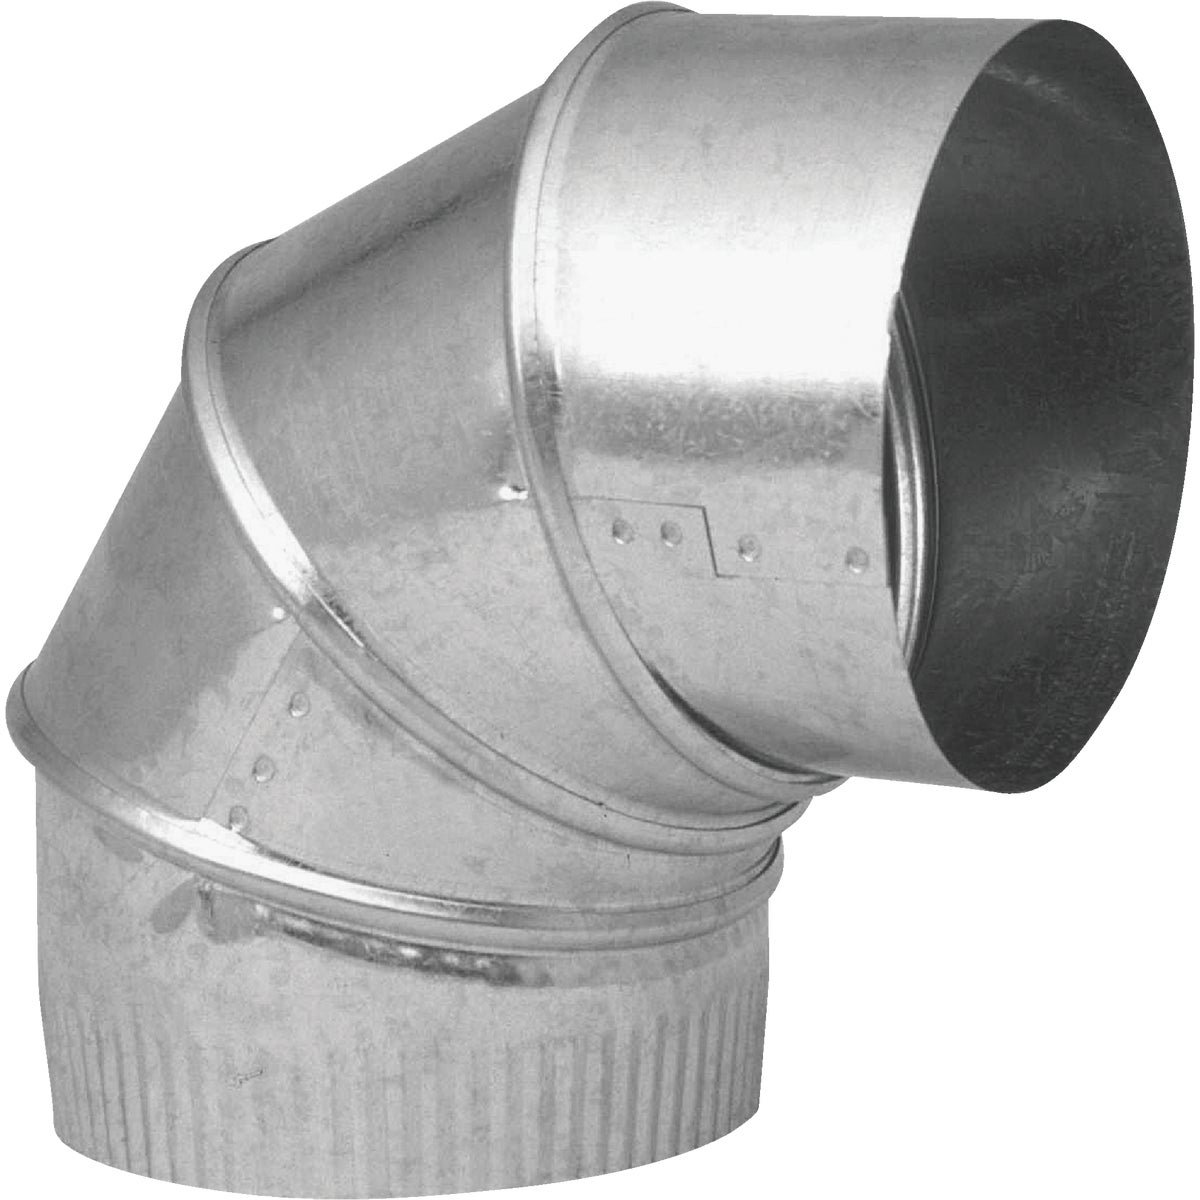 "5"" 26GA GALV ADJ ELBOW - GV0289-C by Imperial Mfg Group"